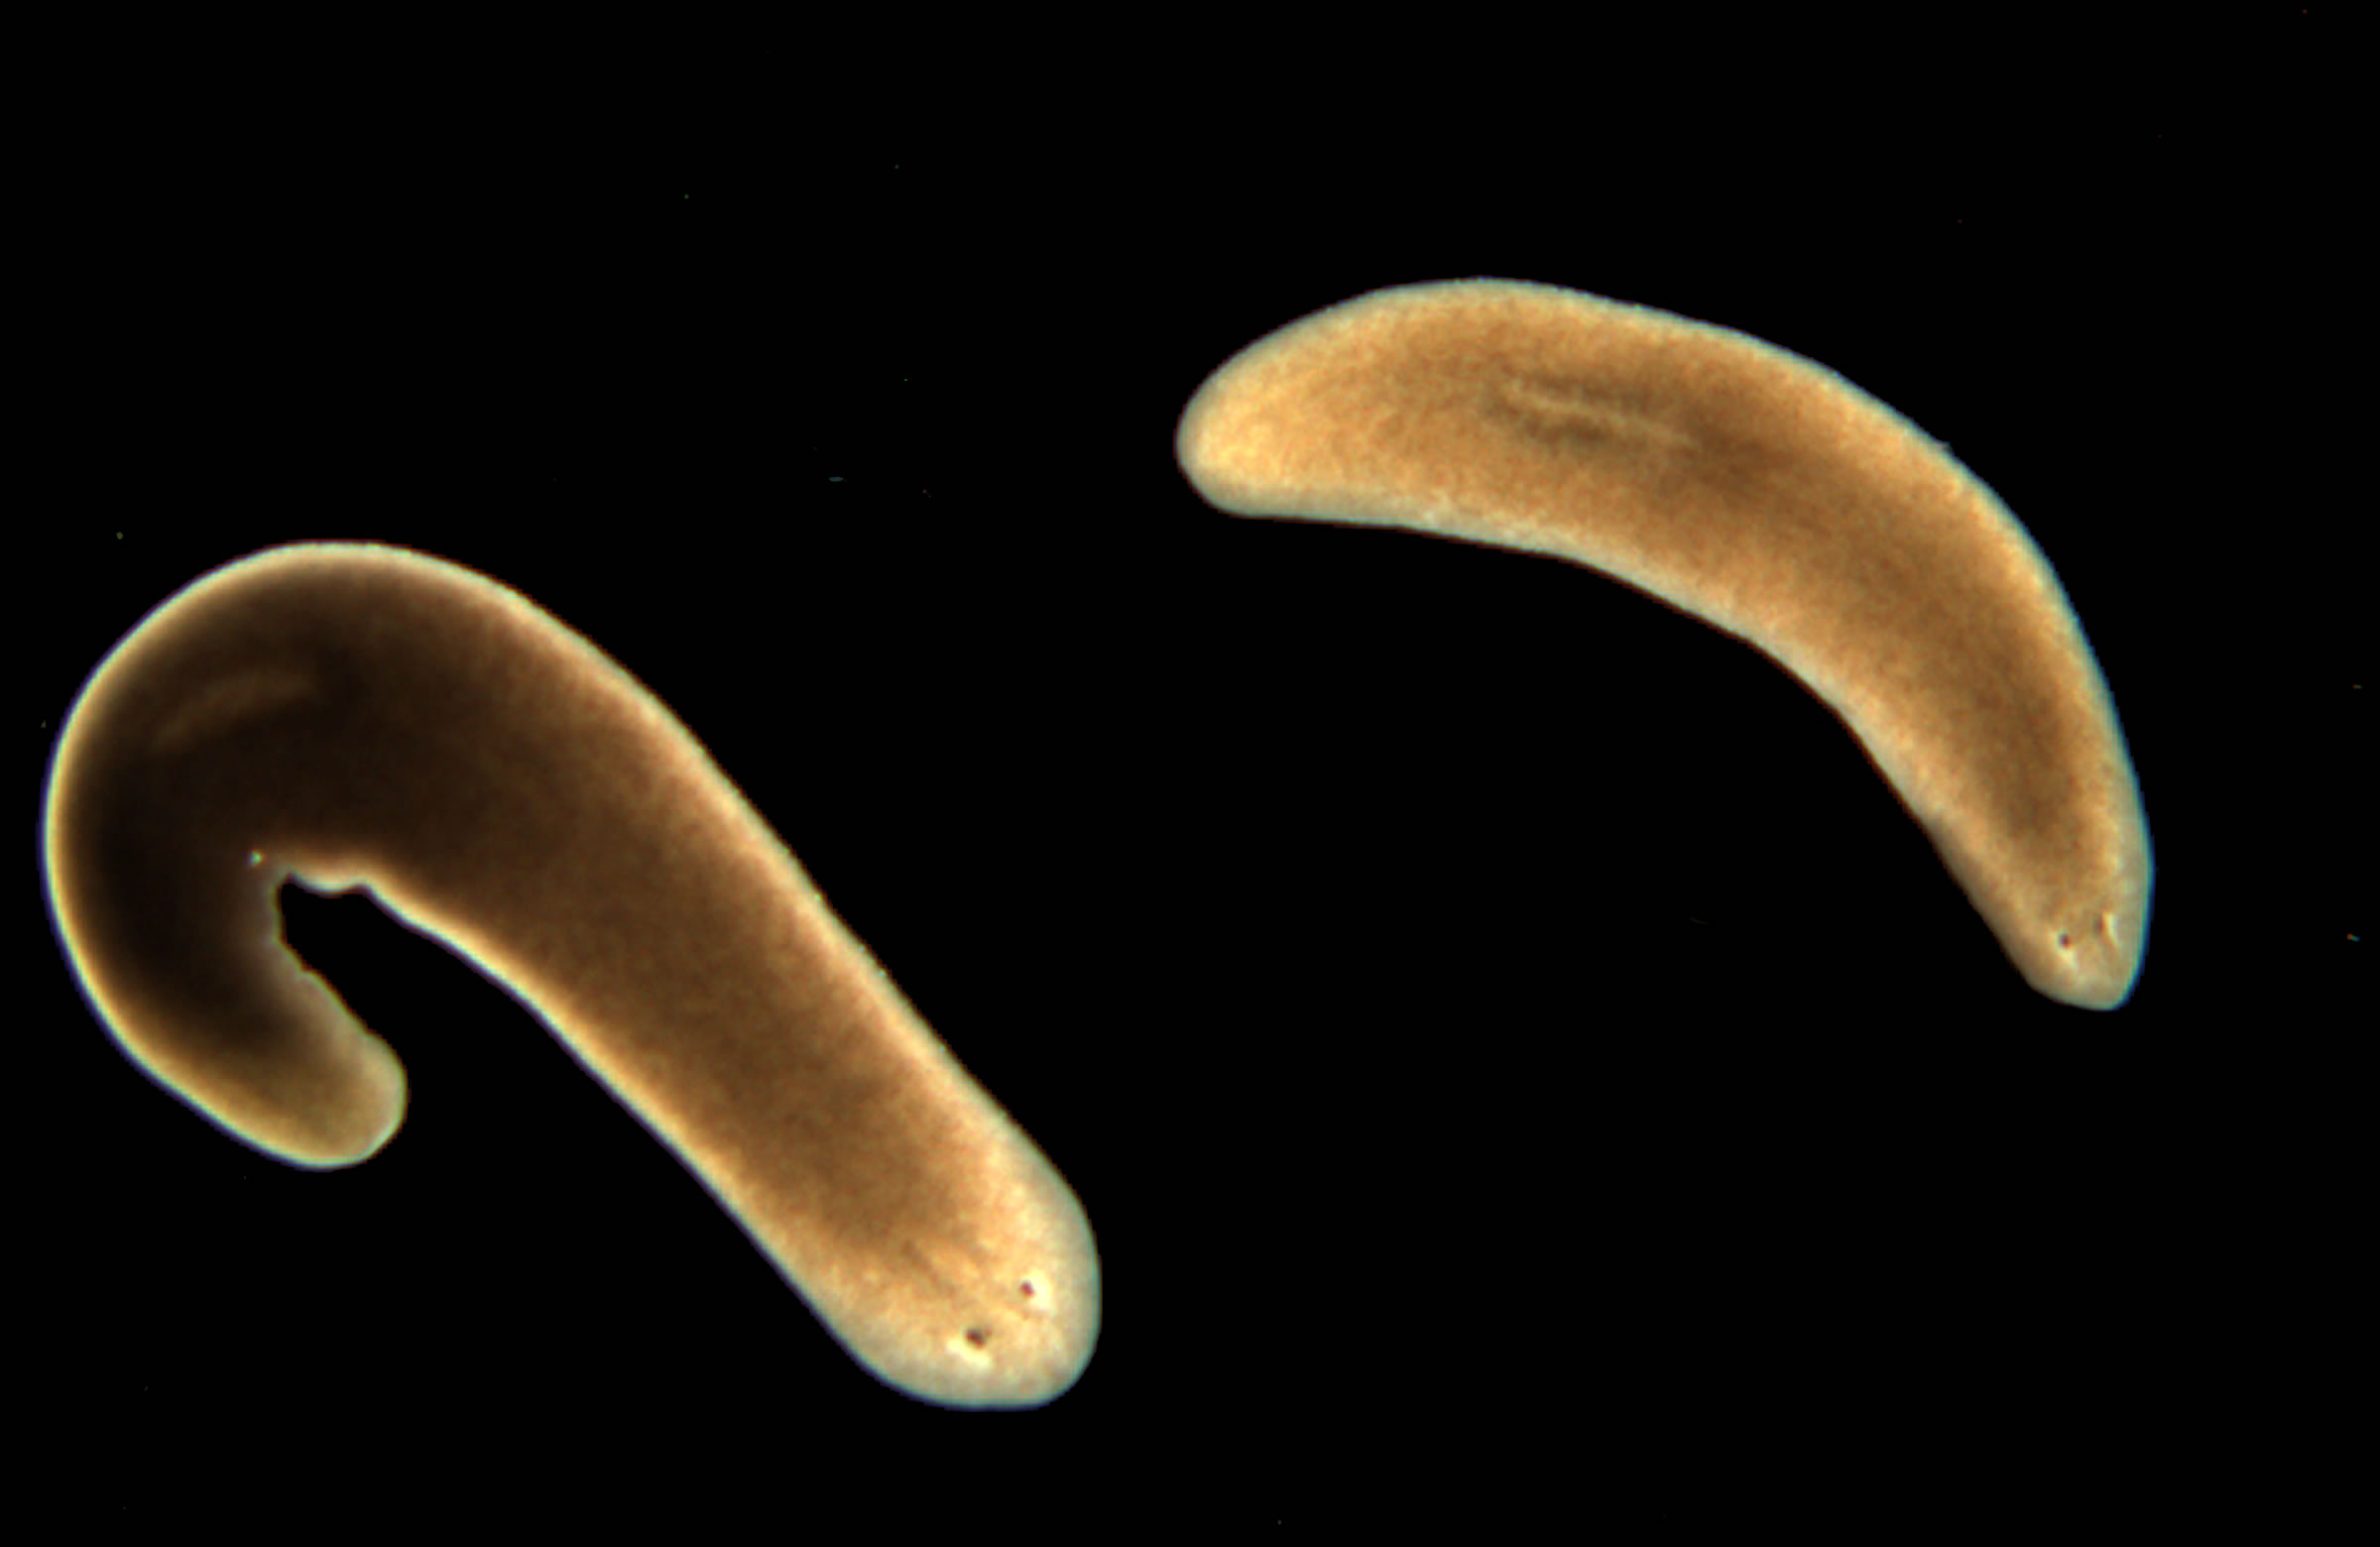 Specimens of the clonal strain CIW4 of the planarian Schmidtea mediterranea. These animals are excellent tissue regenerators and share with humans bilateral symmetry and tissues derived from all three germ layers, i.e., ectoderm, mesoderm and endoderm